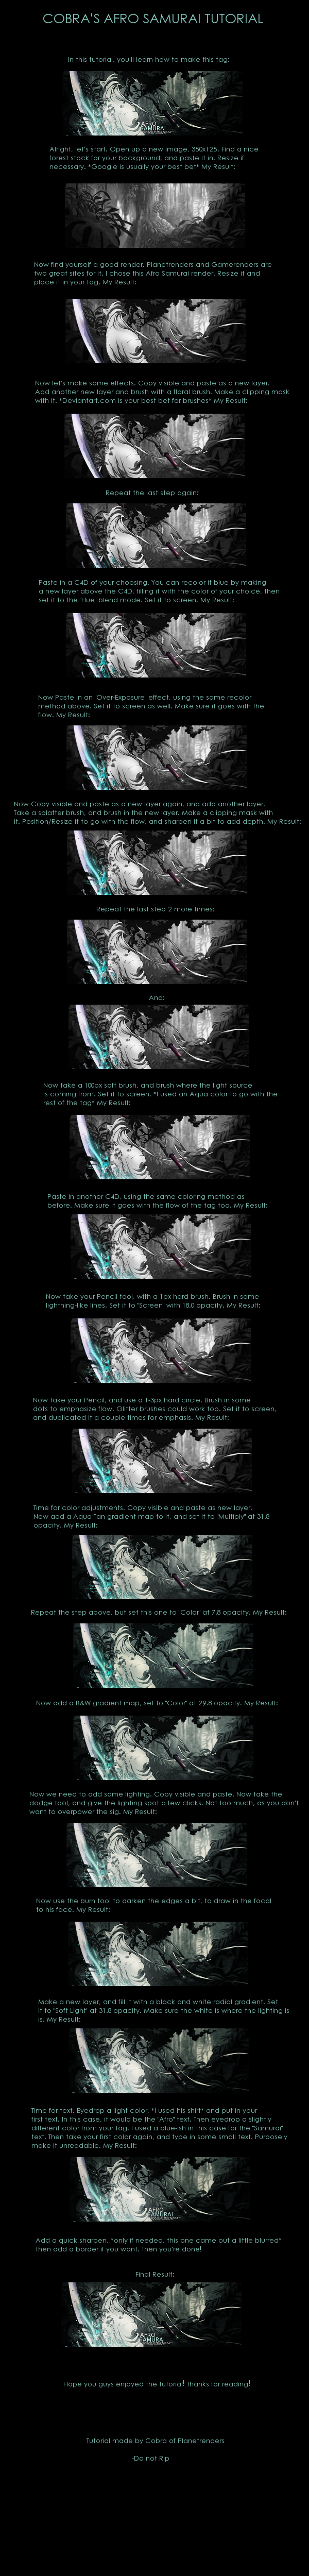 Image: Afro_Samurai_Sig_Tutorial_by_CobraGFX.png]